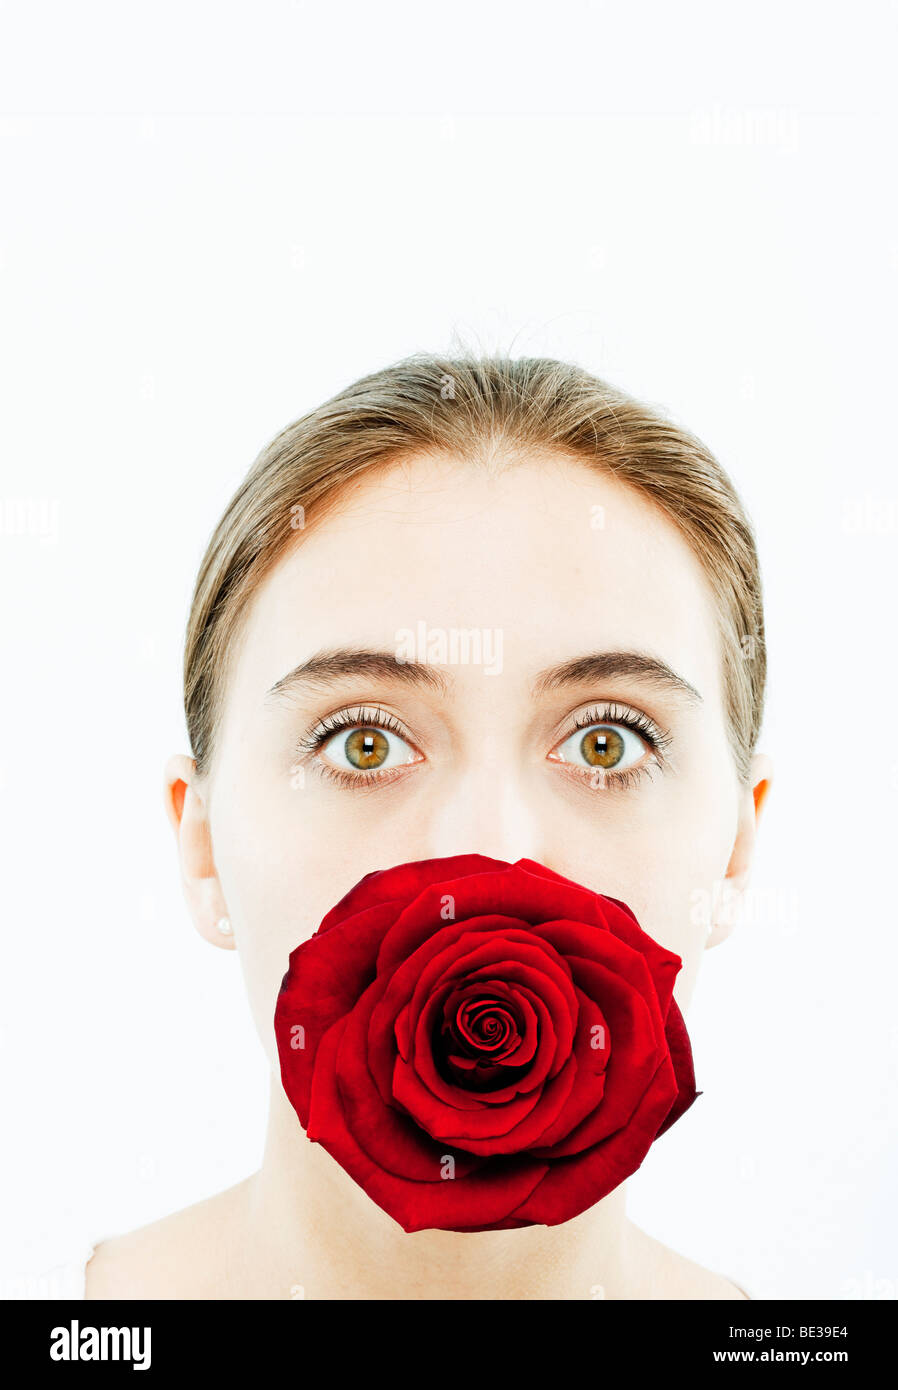 Portrait of young woman with a rose in her mouth - Stock Image